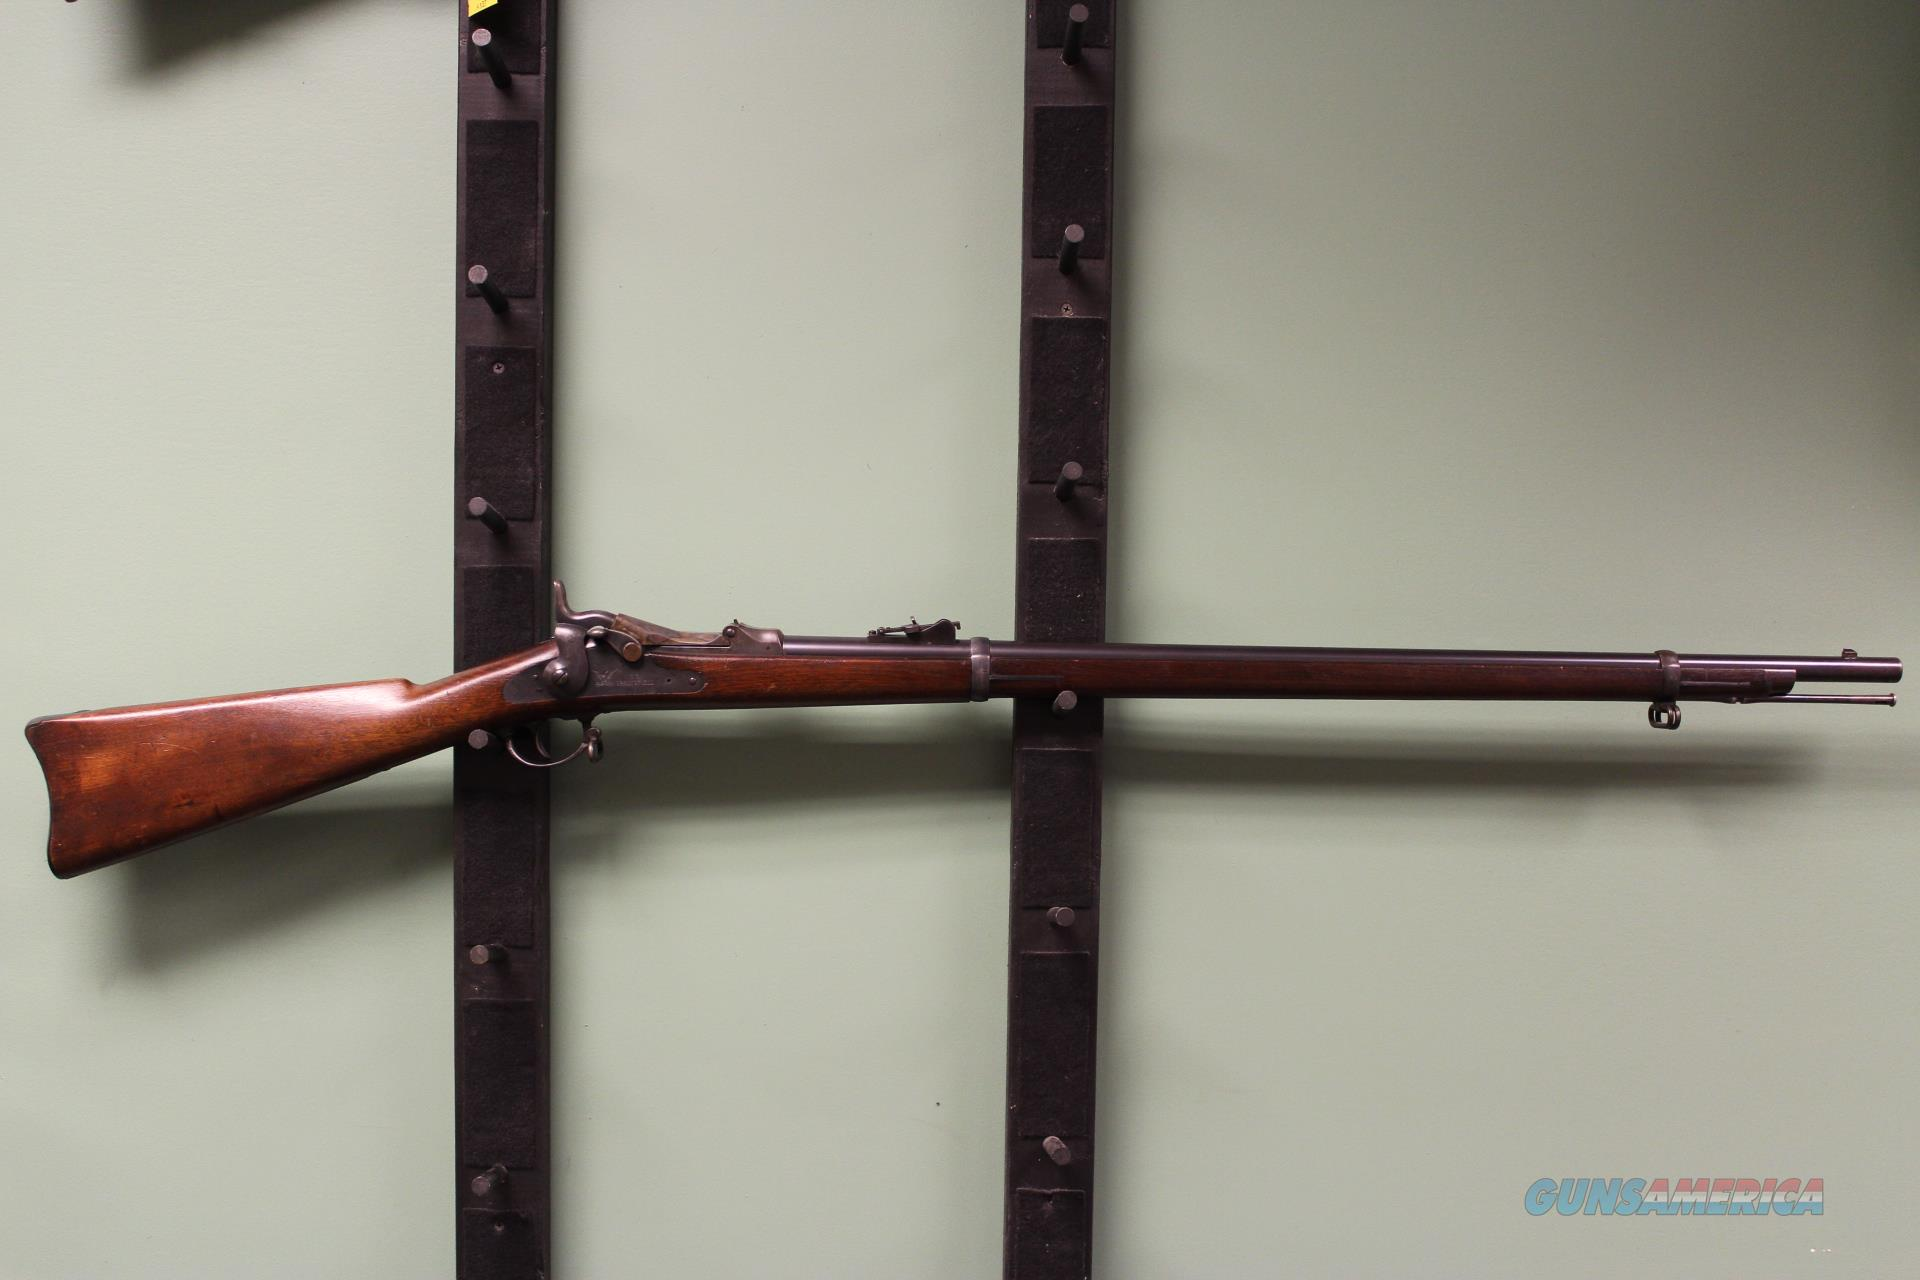 Springfield Armory model 1873 Trapdoor Rifle  Guns > Rifles > Springfield Armory Rifles > M1A/M14